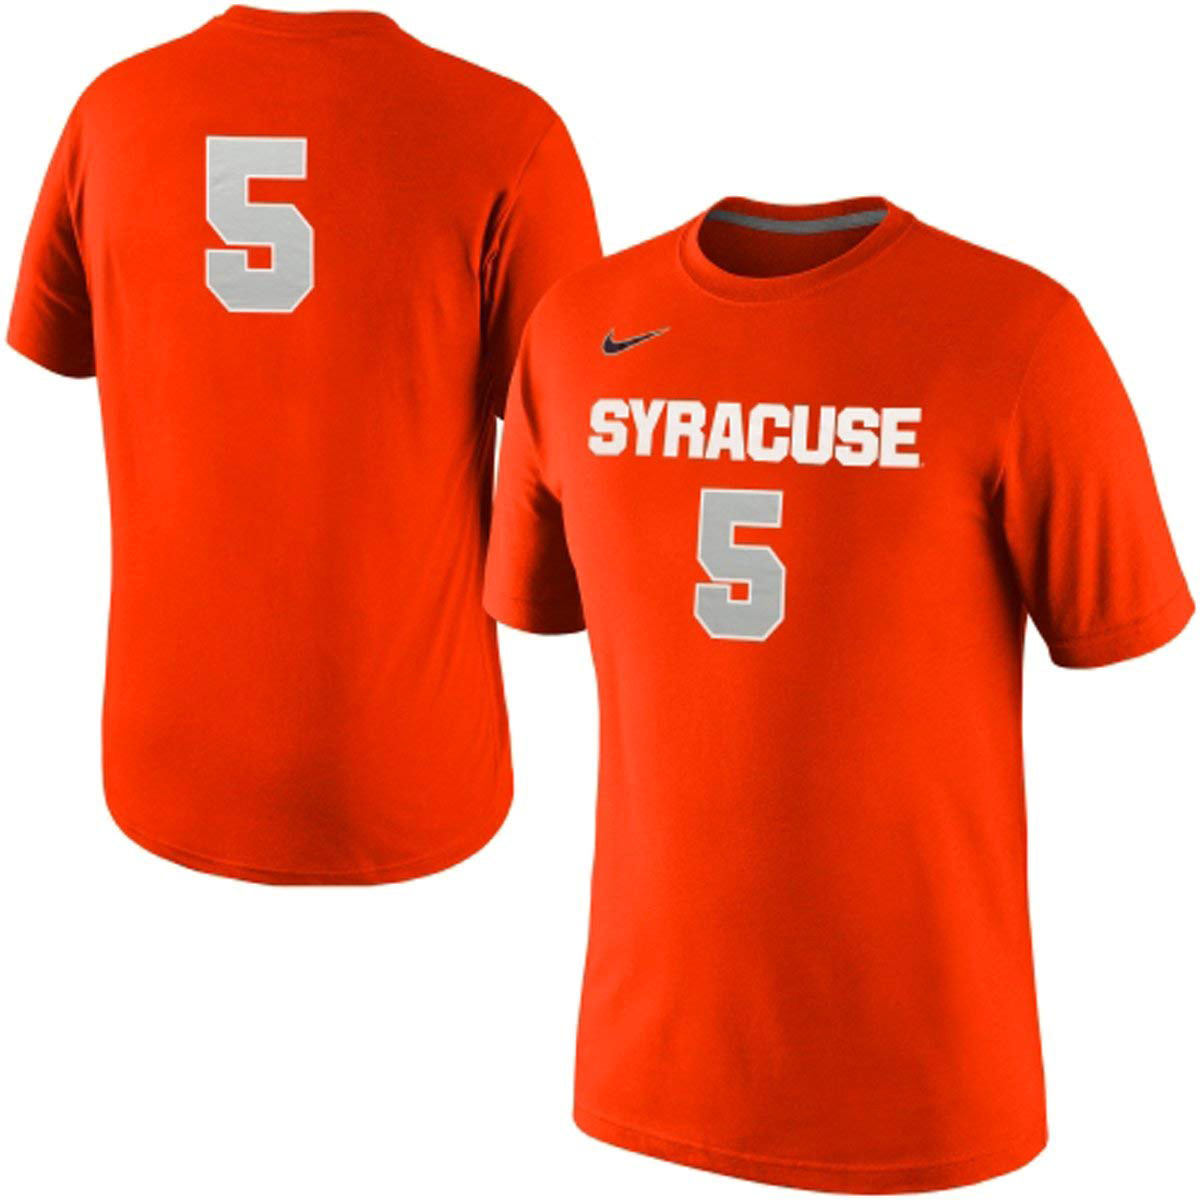 low priced bed9a 6abc7 Details about Nike Syracuse Orange #5 Replica Basketball Jersey T-Shirt NEW